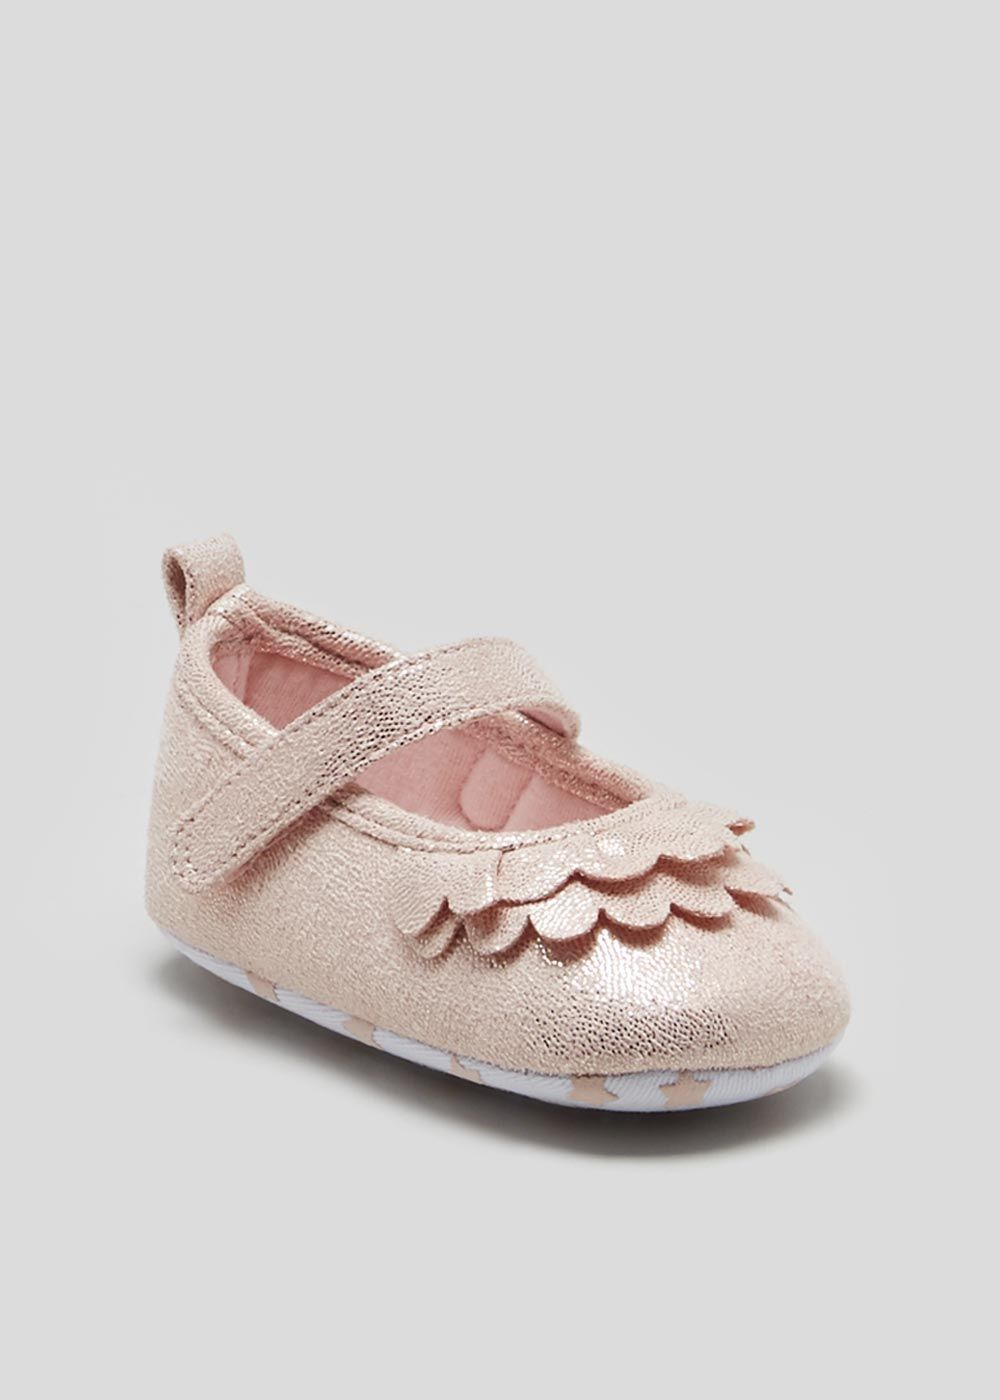 eccdcd3cba23 Girls Soft Sole Ruffle Baby Ballet Shoes (Newborn-18mths) – – Matalan